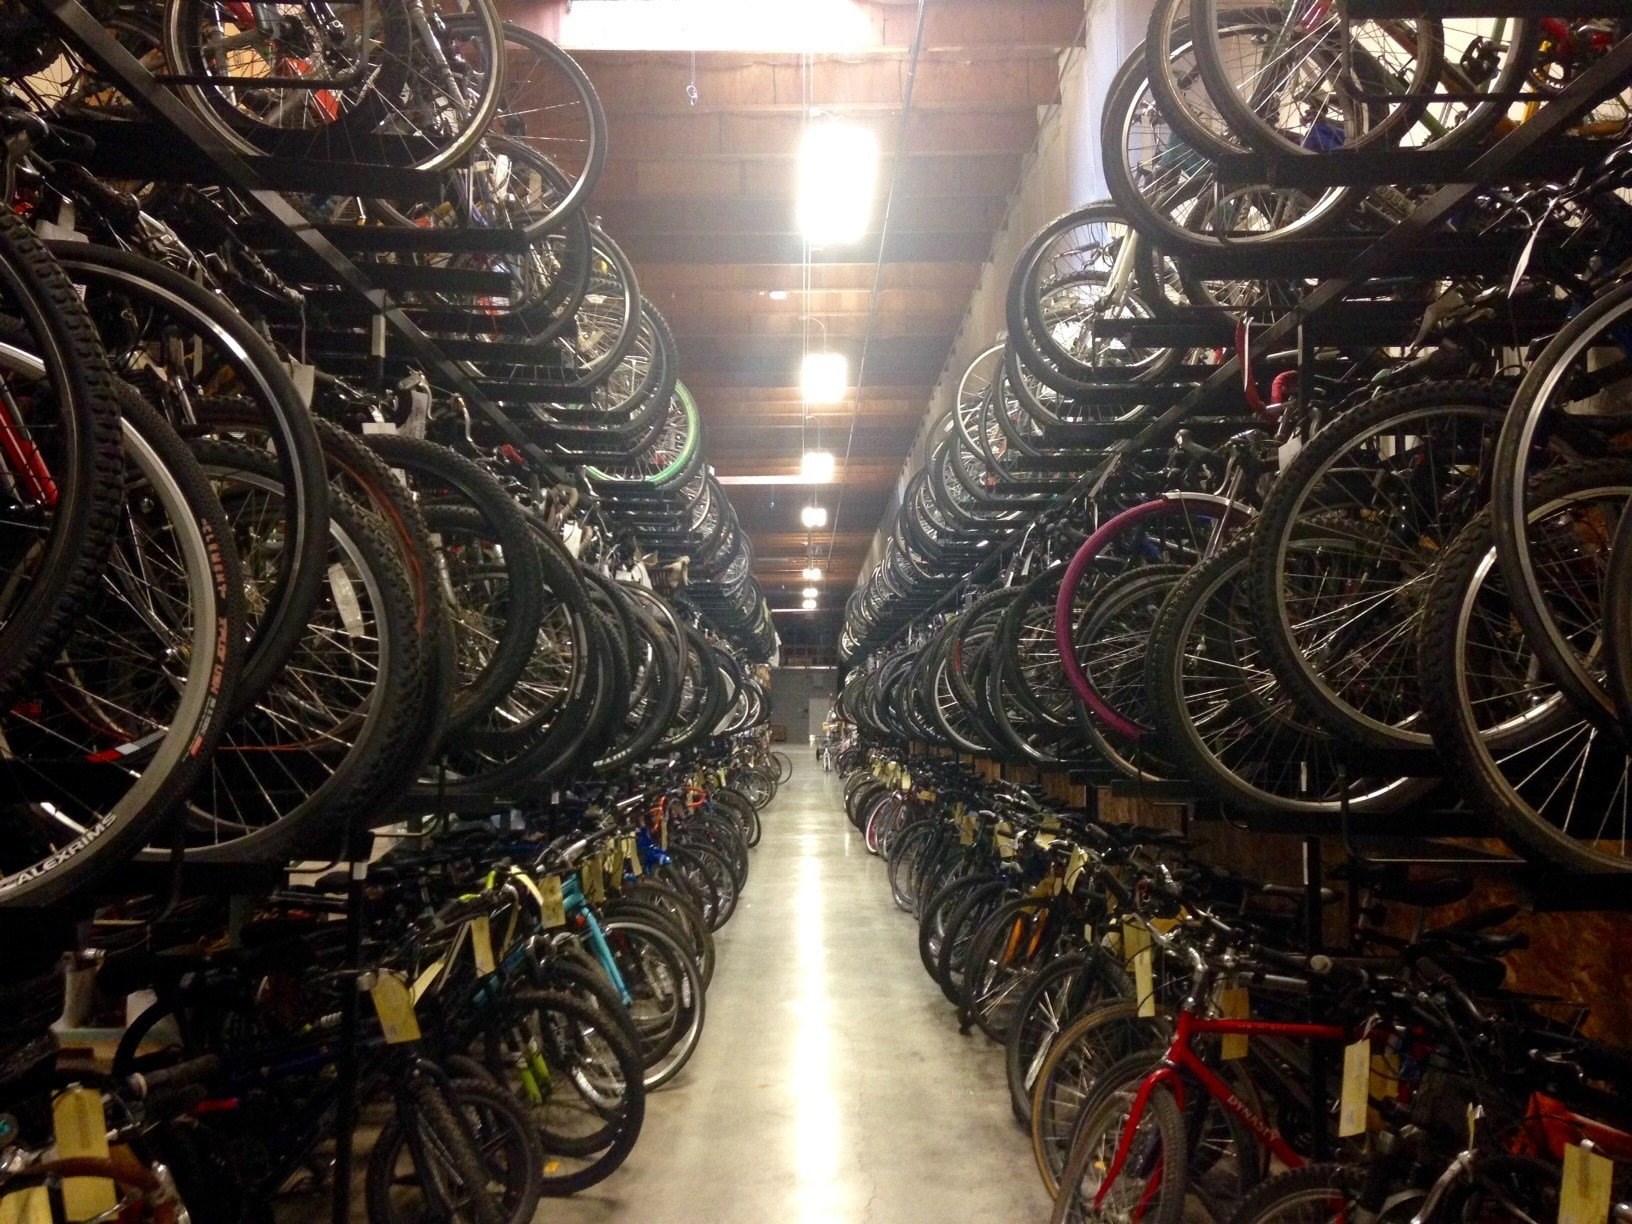 Nearly 400 recovered bikes currently sit in the Portland Police Bureau's property room.